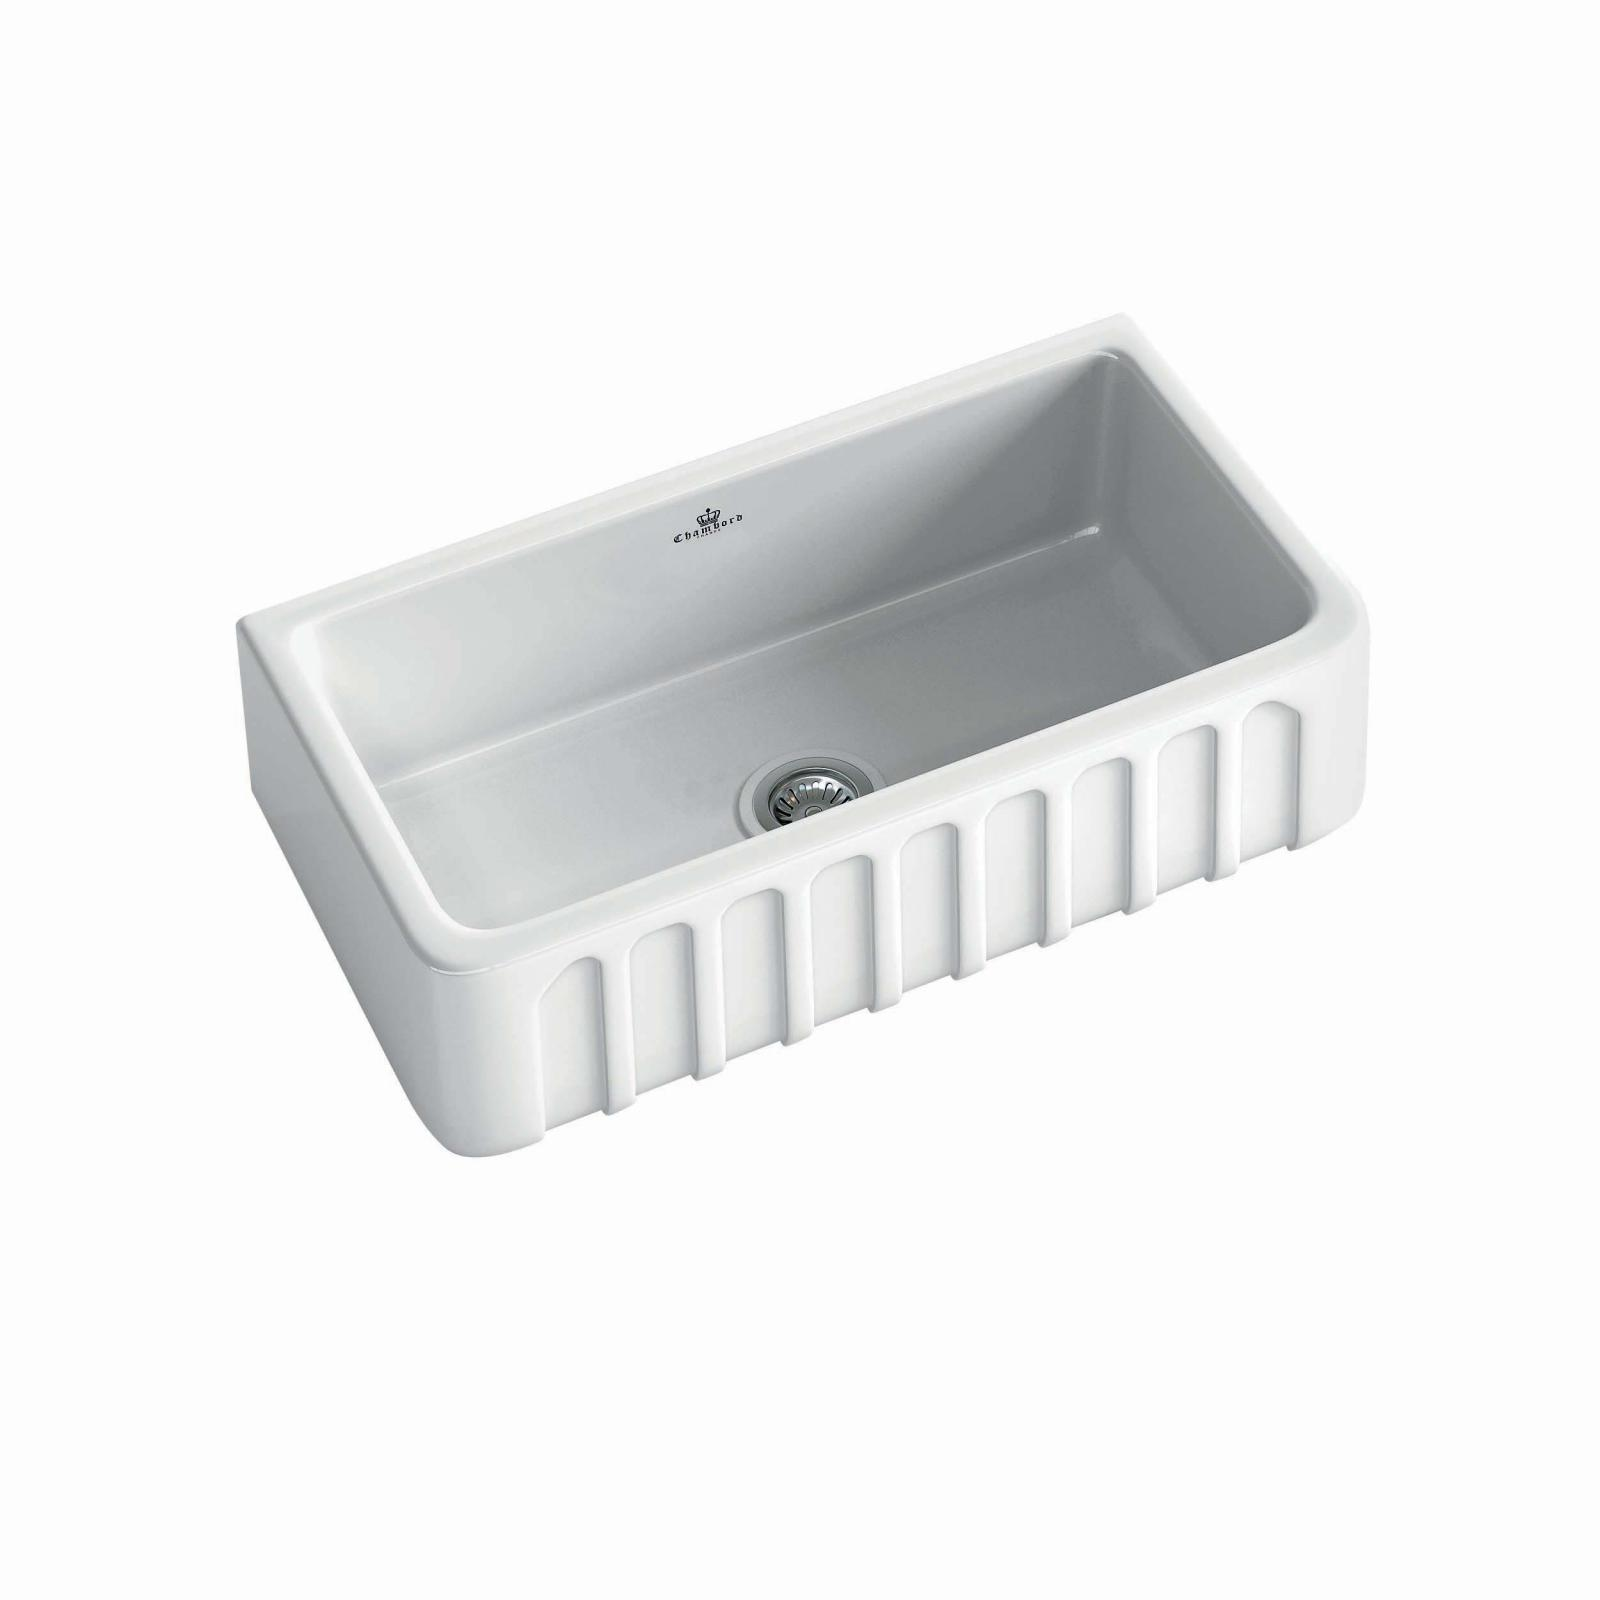 High-quality sink Louis II - single bowl, ceramic - ambience 1